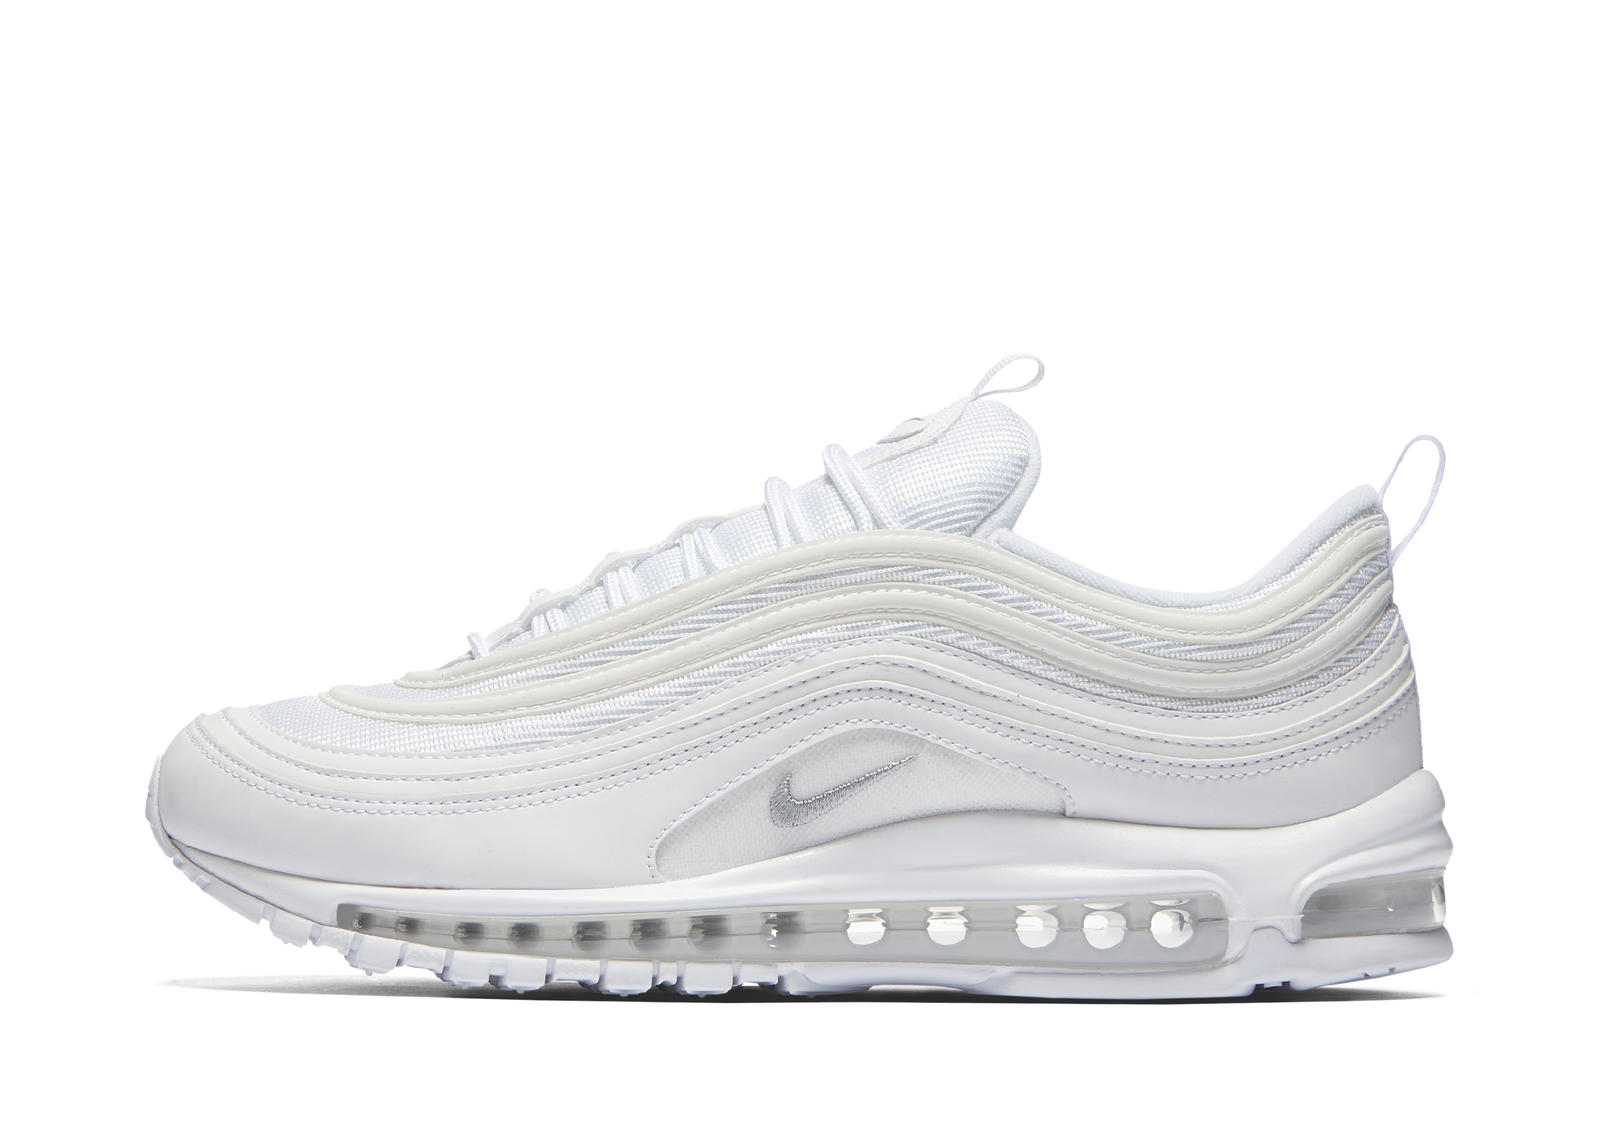 New Fall Colorways for the Air Max 97 - Nike News 8b72db9ff5